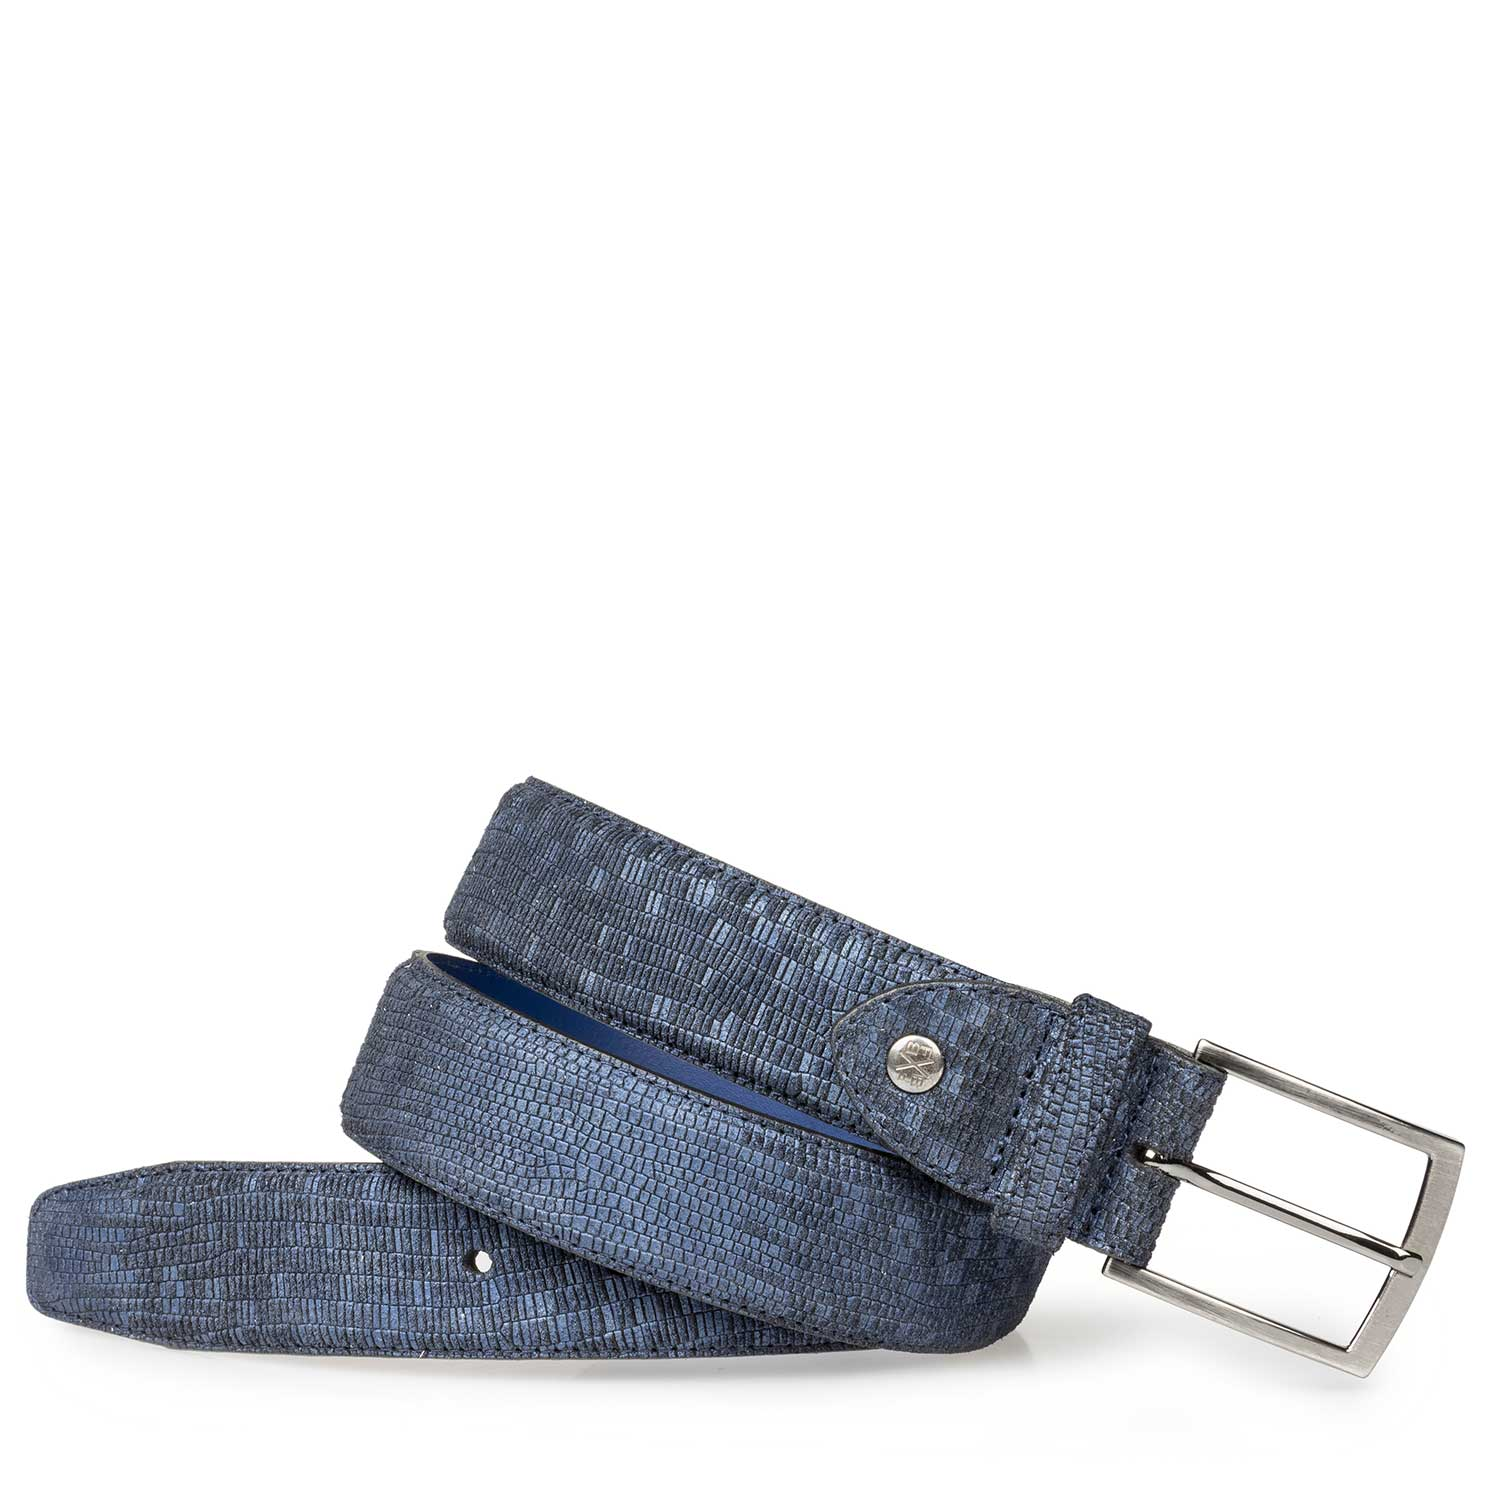 75190/15 - Blue suede leather belt with structural pattern